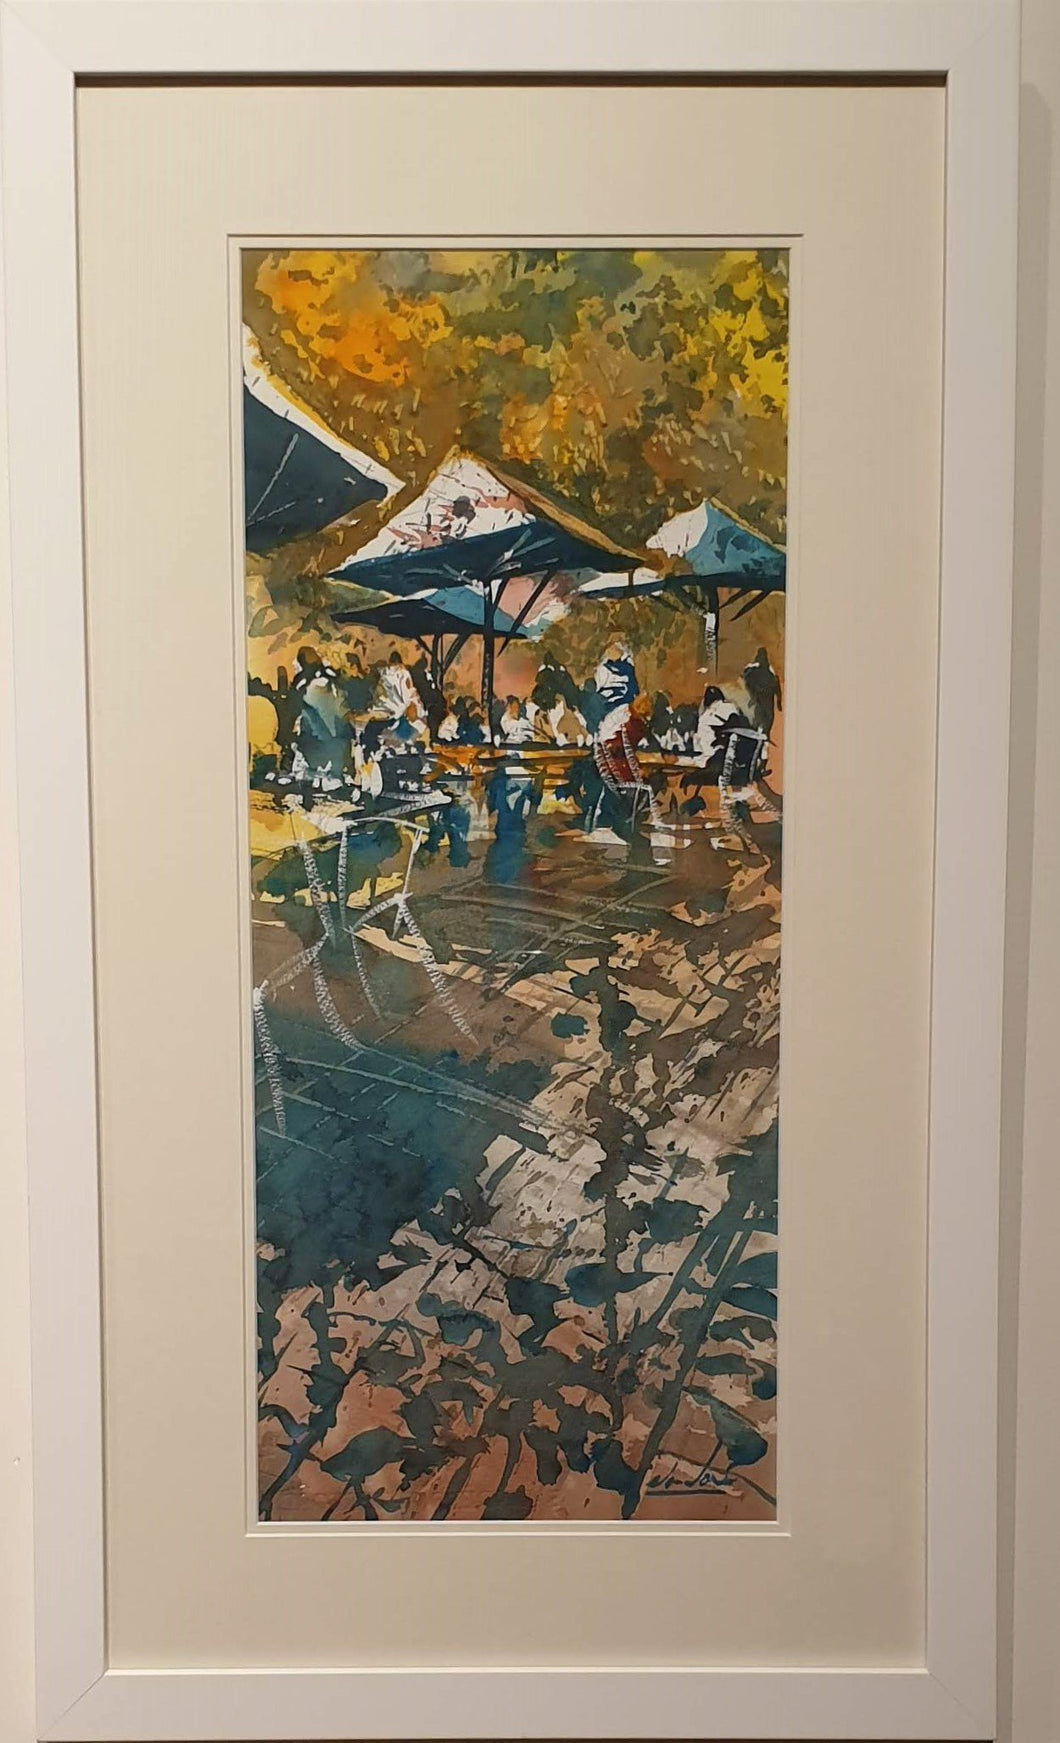 Bridgewater Al Fresco - watercolour by Alan Ramachandran-Art Gallery-Atelier Crafers